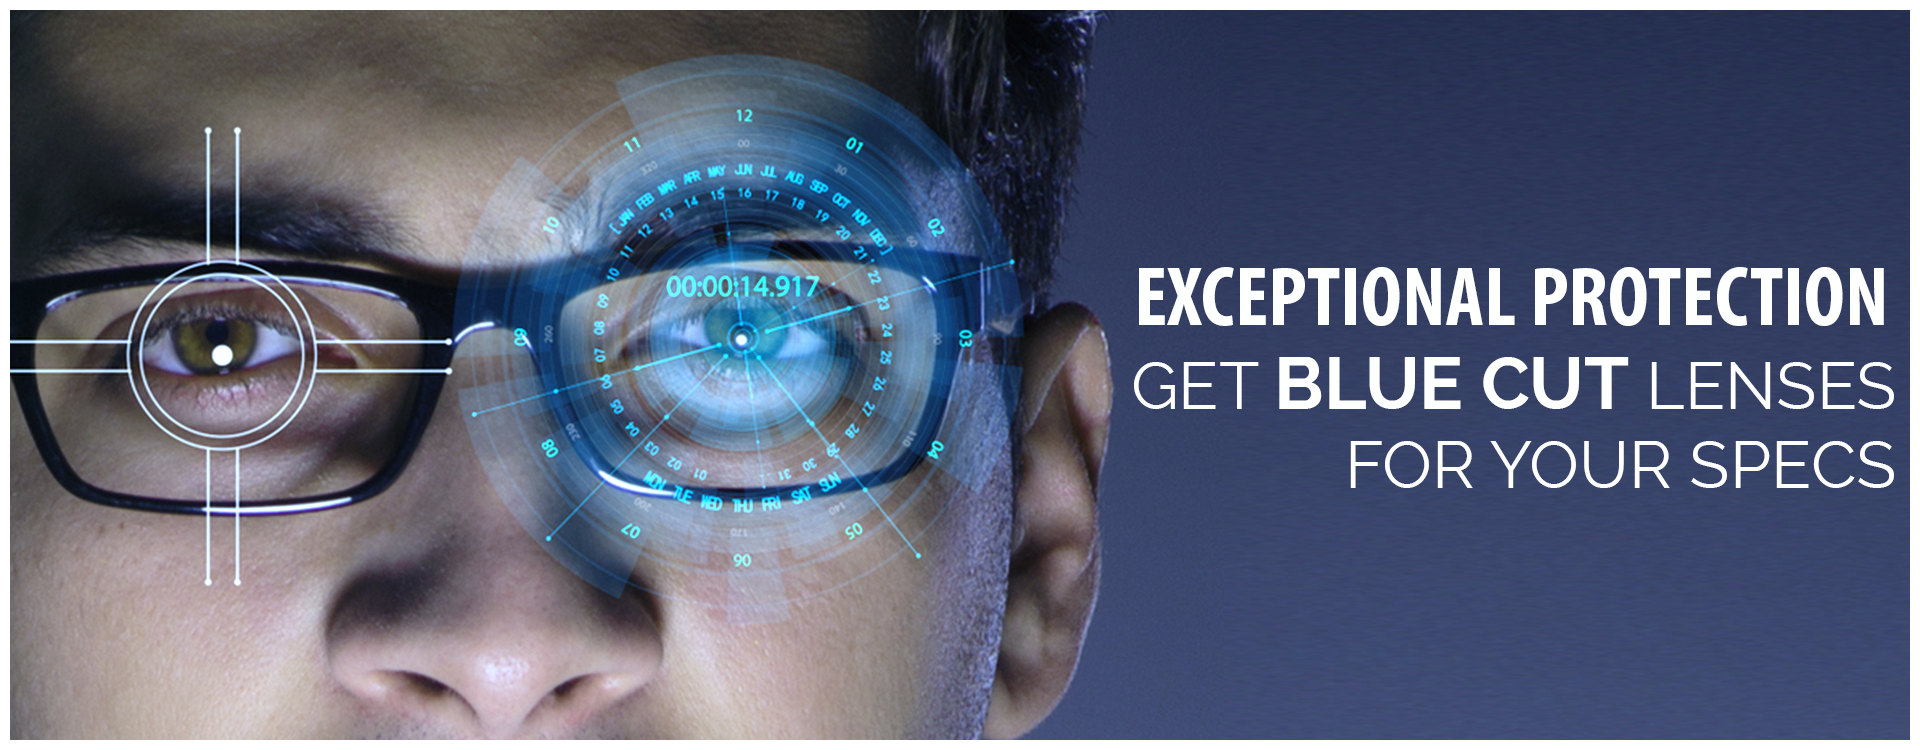 Exceptional Protection:  Get Blue Cut Lenses For Your Specs